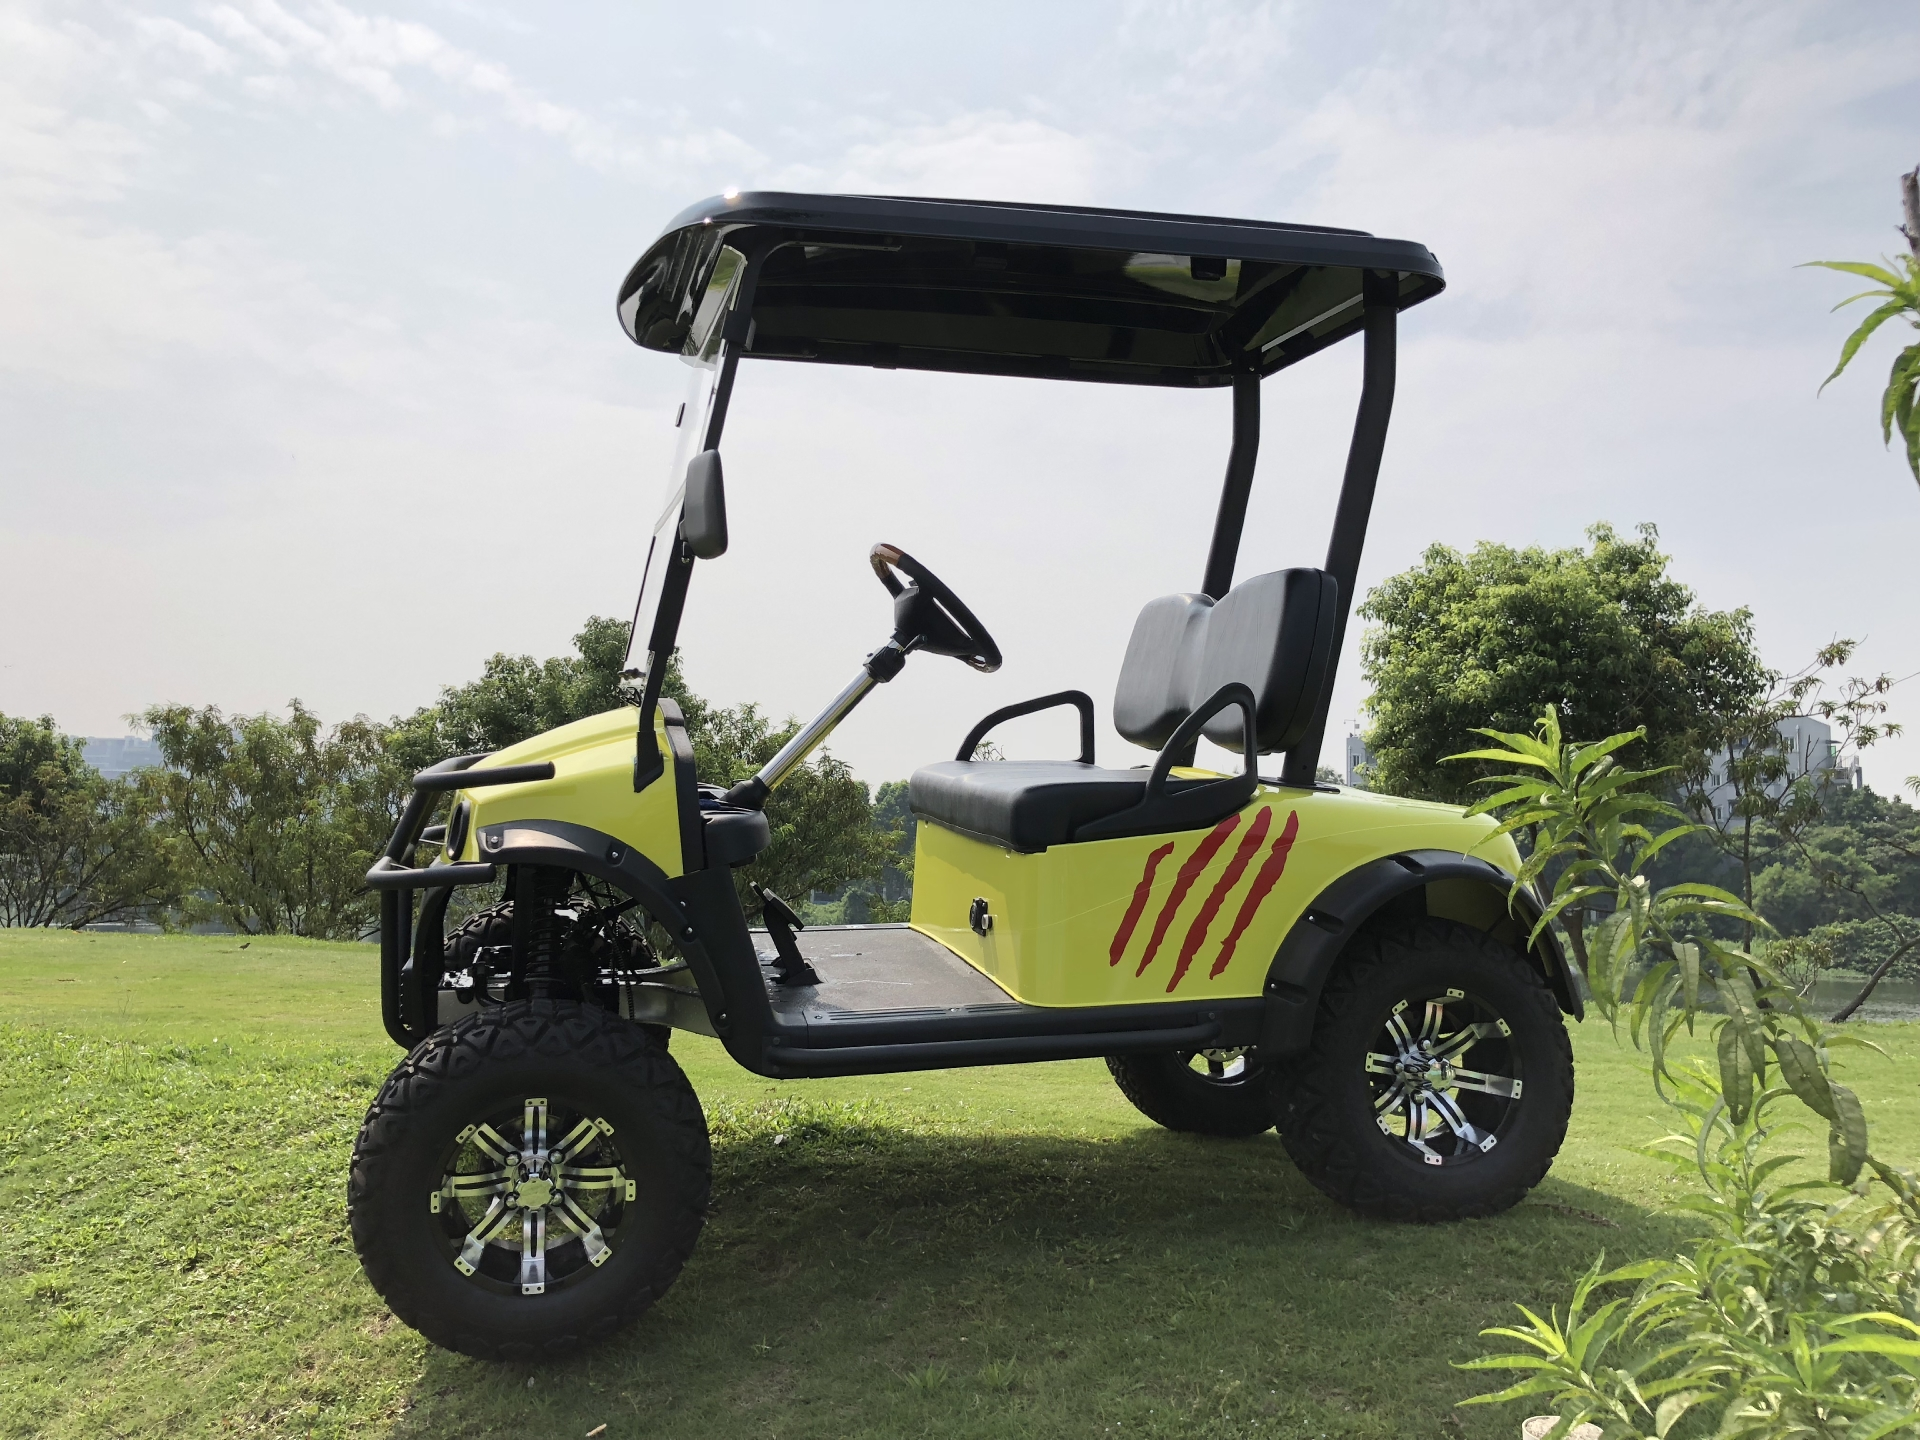 2 Seater Hunting Vehicle- Vehicle Model: RD-DL2AC+D